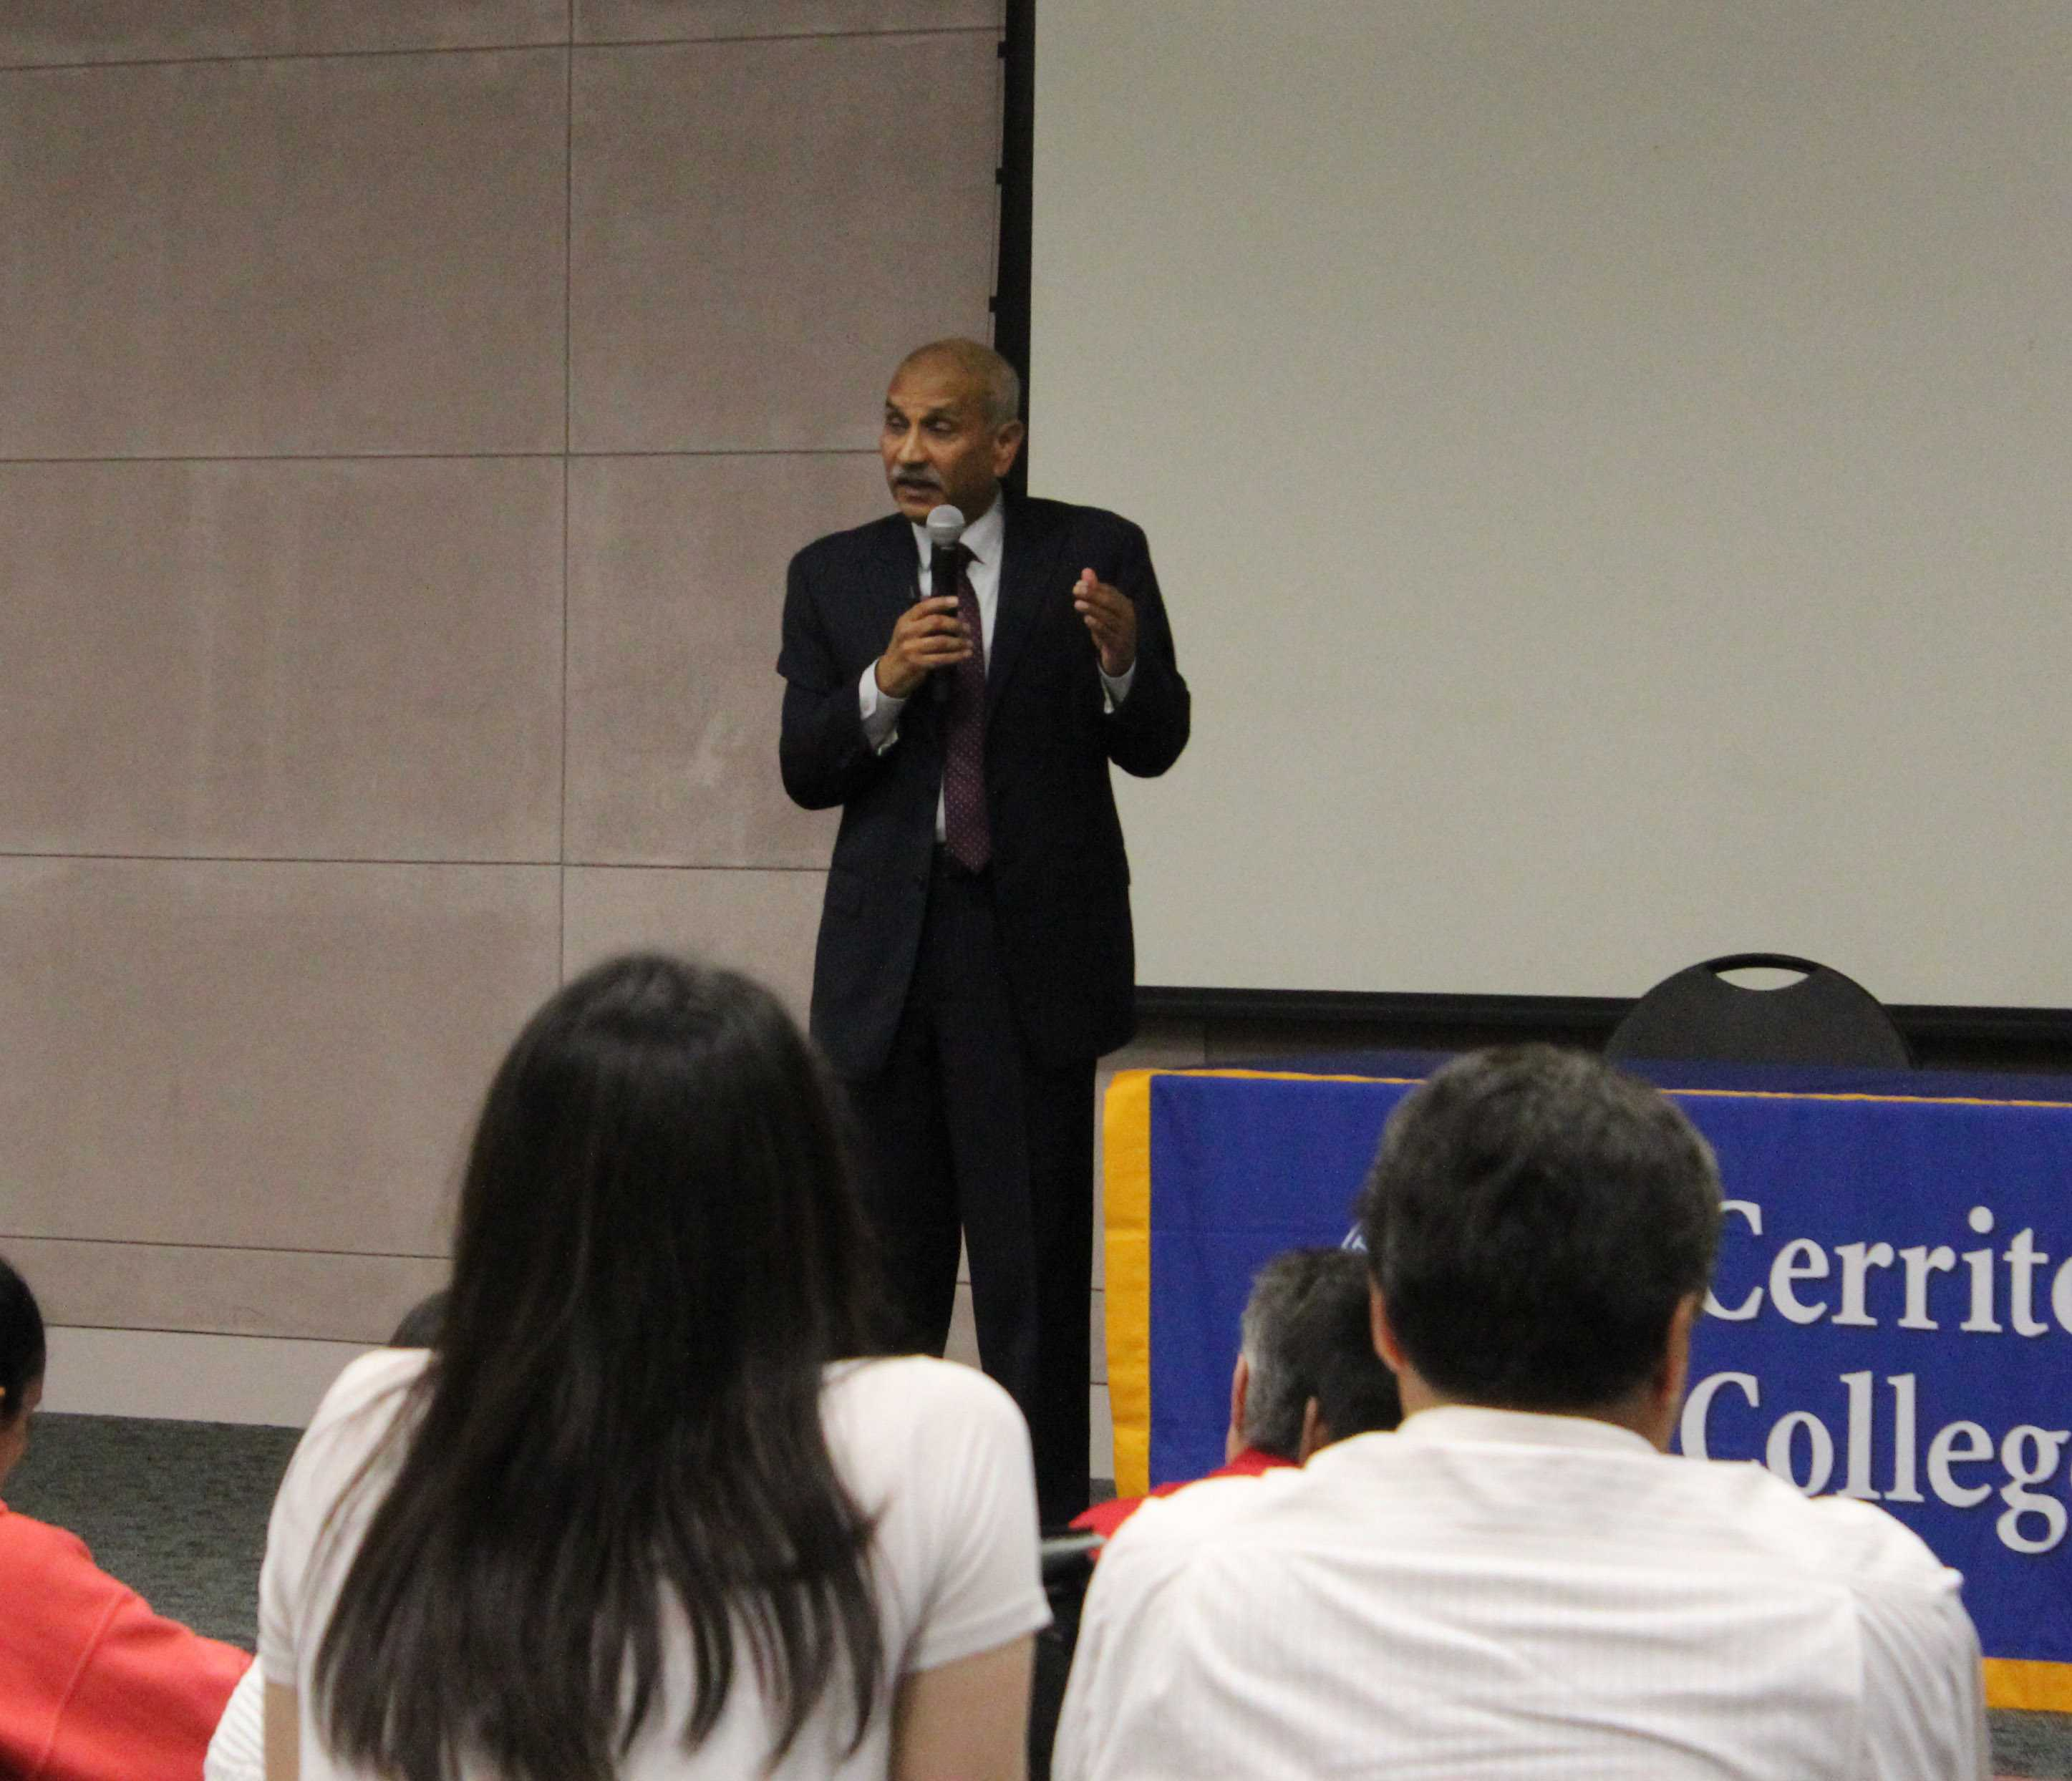 Presidential candidate Dr. Rajen Vurdien spoke about his mission and experience on March 11 in the Teleconference Center. Elections have not yet started. Photo credit: Monica Gallardo